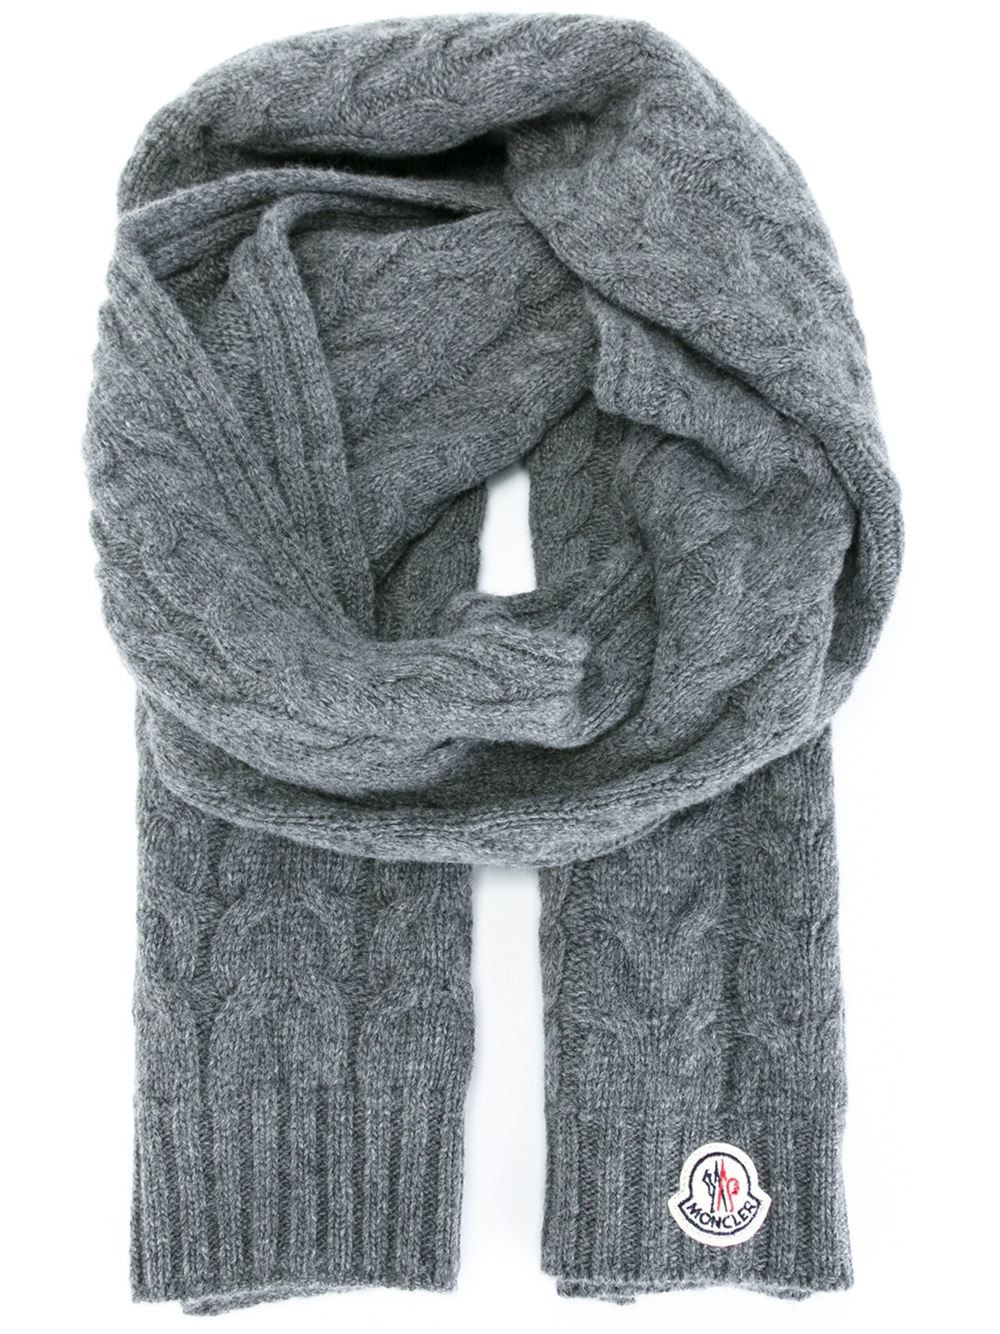 Luxury Moncler Cable Knit Scarf In Gray for Men Grey Cable Knit Scarf Of Delightful 48 Ideas Cable Knit Scarf